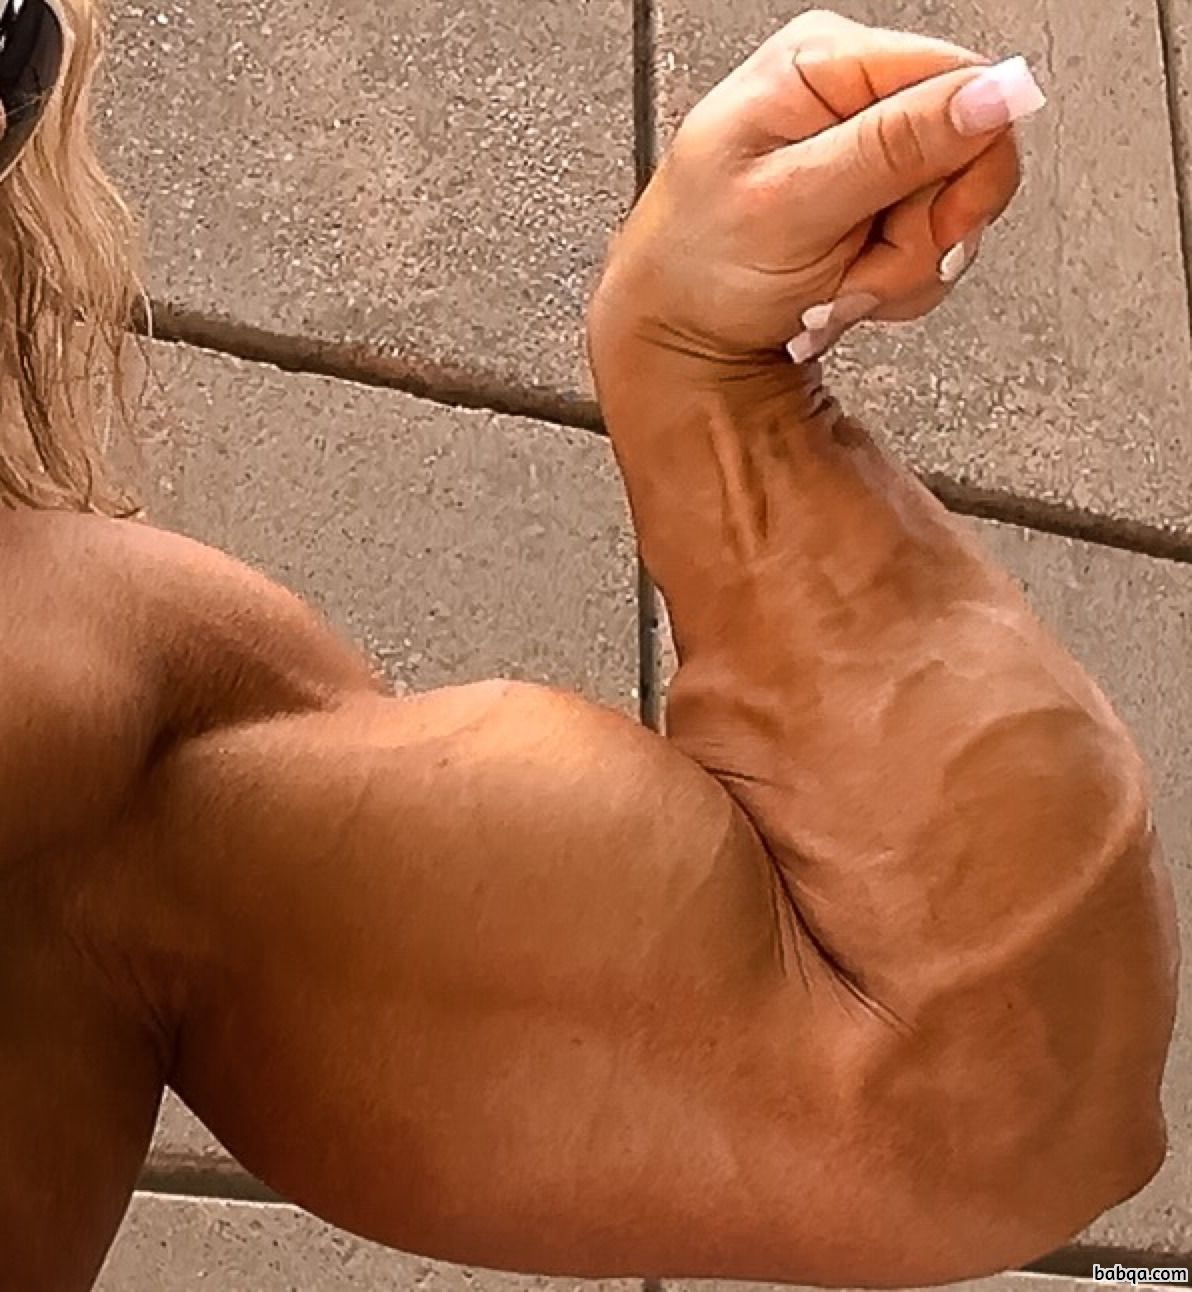 hot babe with strong body and muscle arms pic from reddit